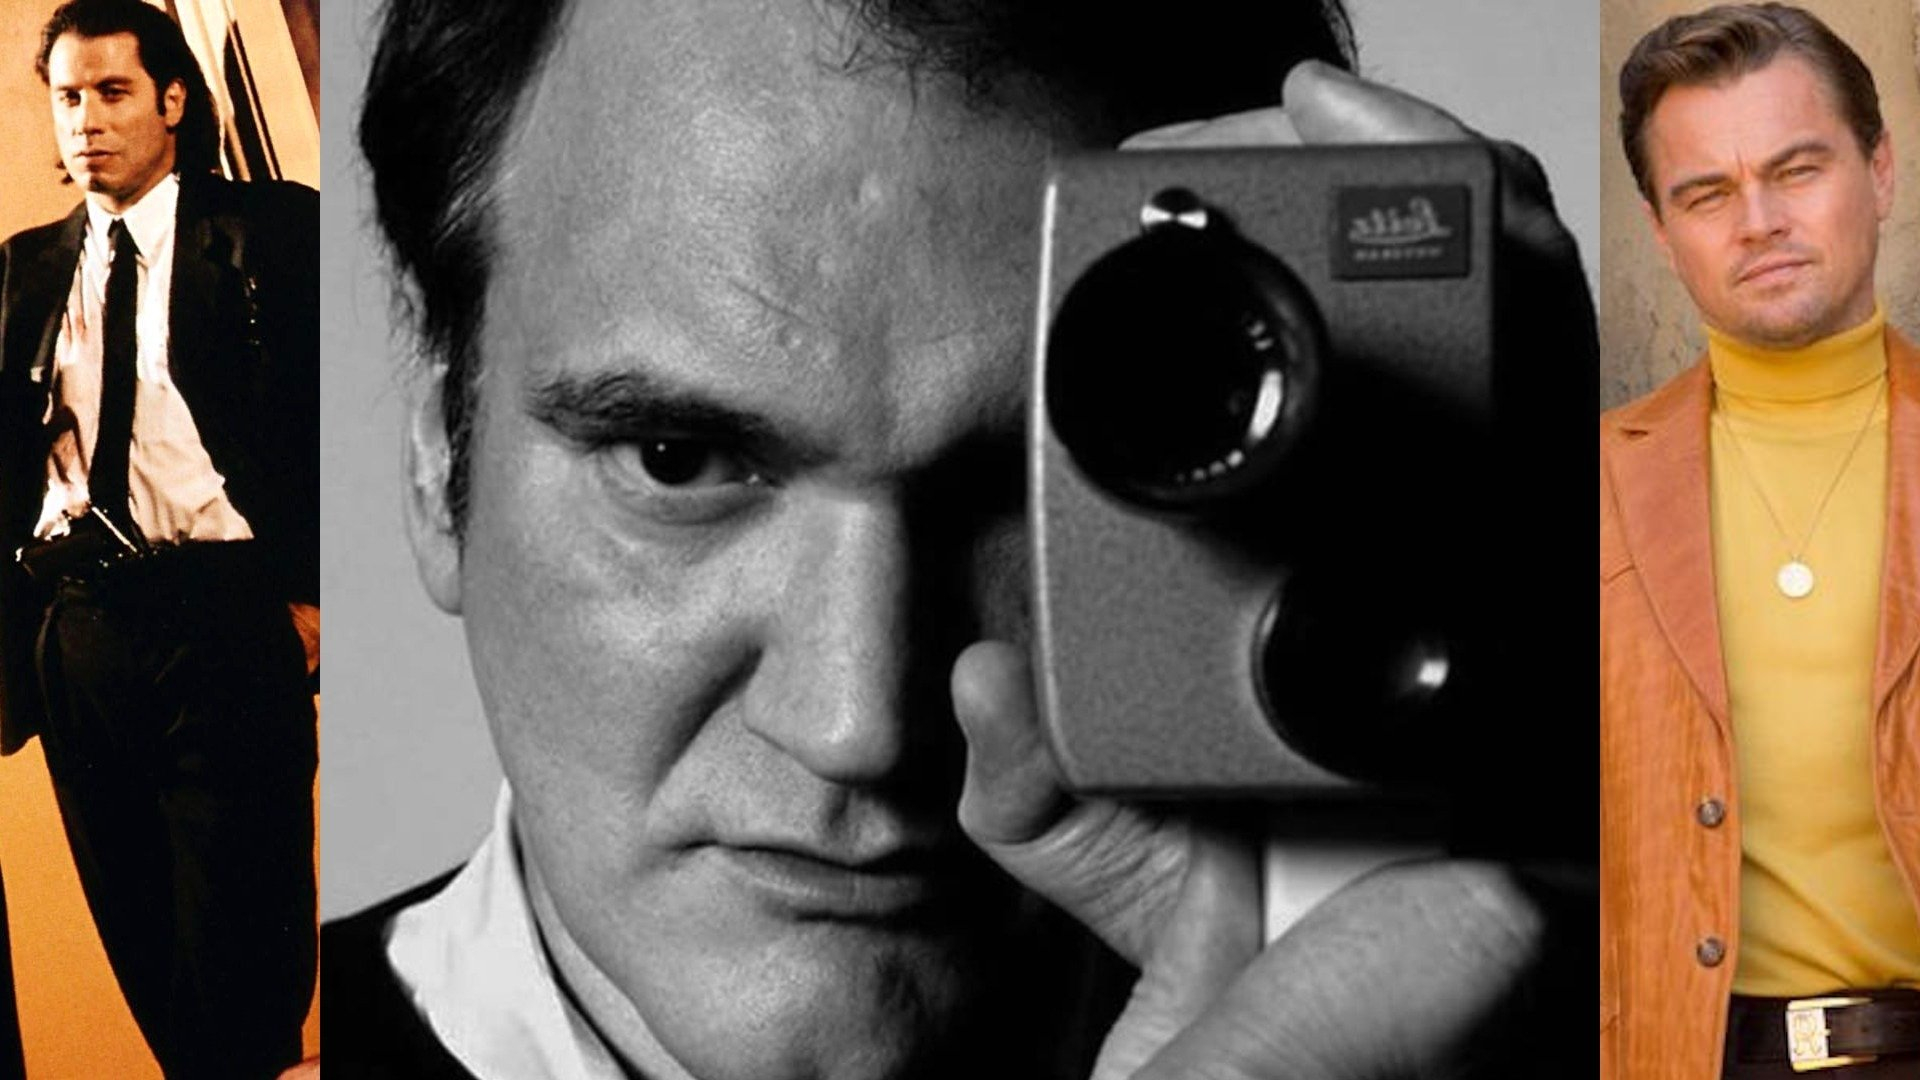 The Worst Quentin Tarantino Movie: Why This Is An Easy Choice